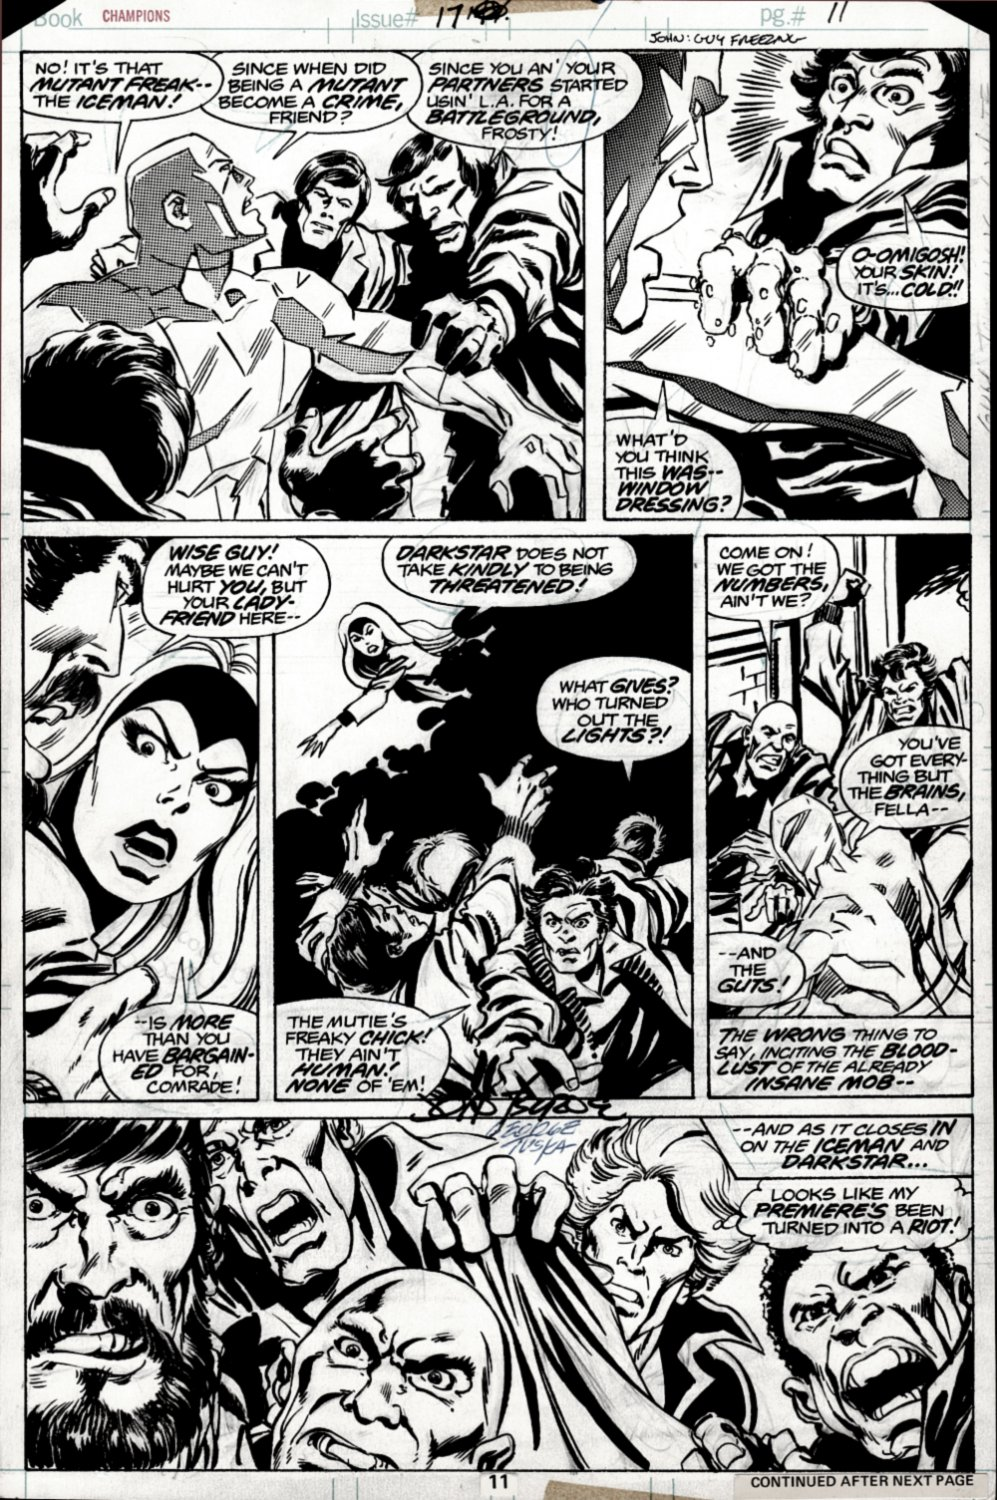 Champions #17 p 11 (Iceman, Darkstar, & Johnny Blaze Attacked By Trump Supporters! JOHN BYRNE INKS!) 1978